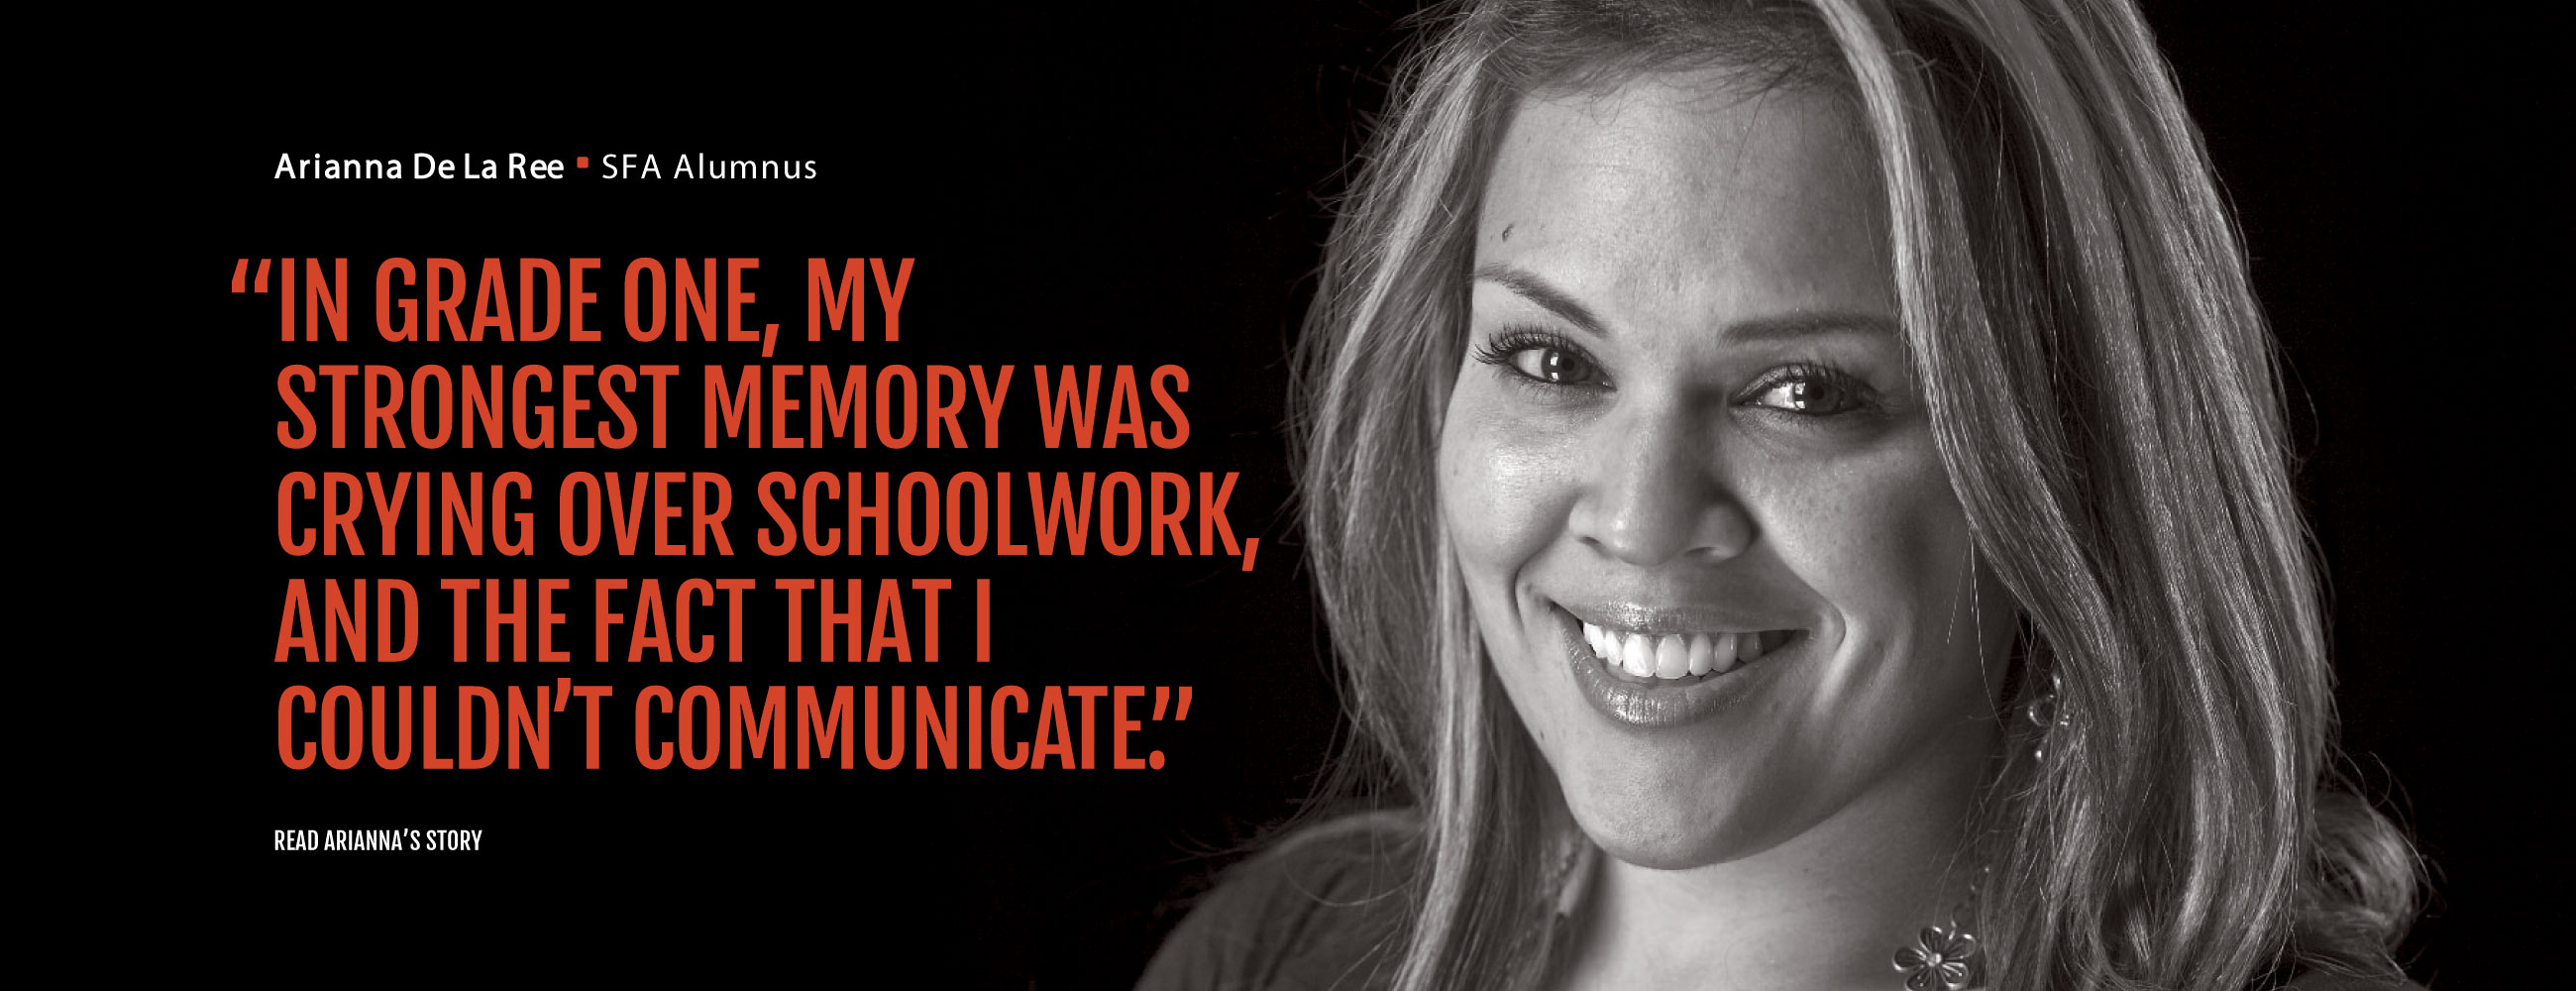 """""""IN GRADE ONE, MY STRONGEST MEMORY WAS CRYING OVER SCHOOL WORK, AND THE FACT THAT I COULDN'T COMMUNICATE"""""""